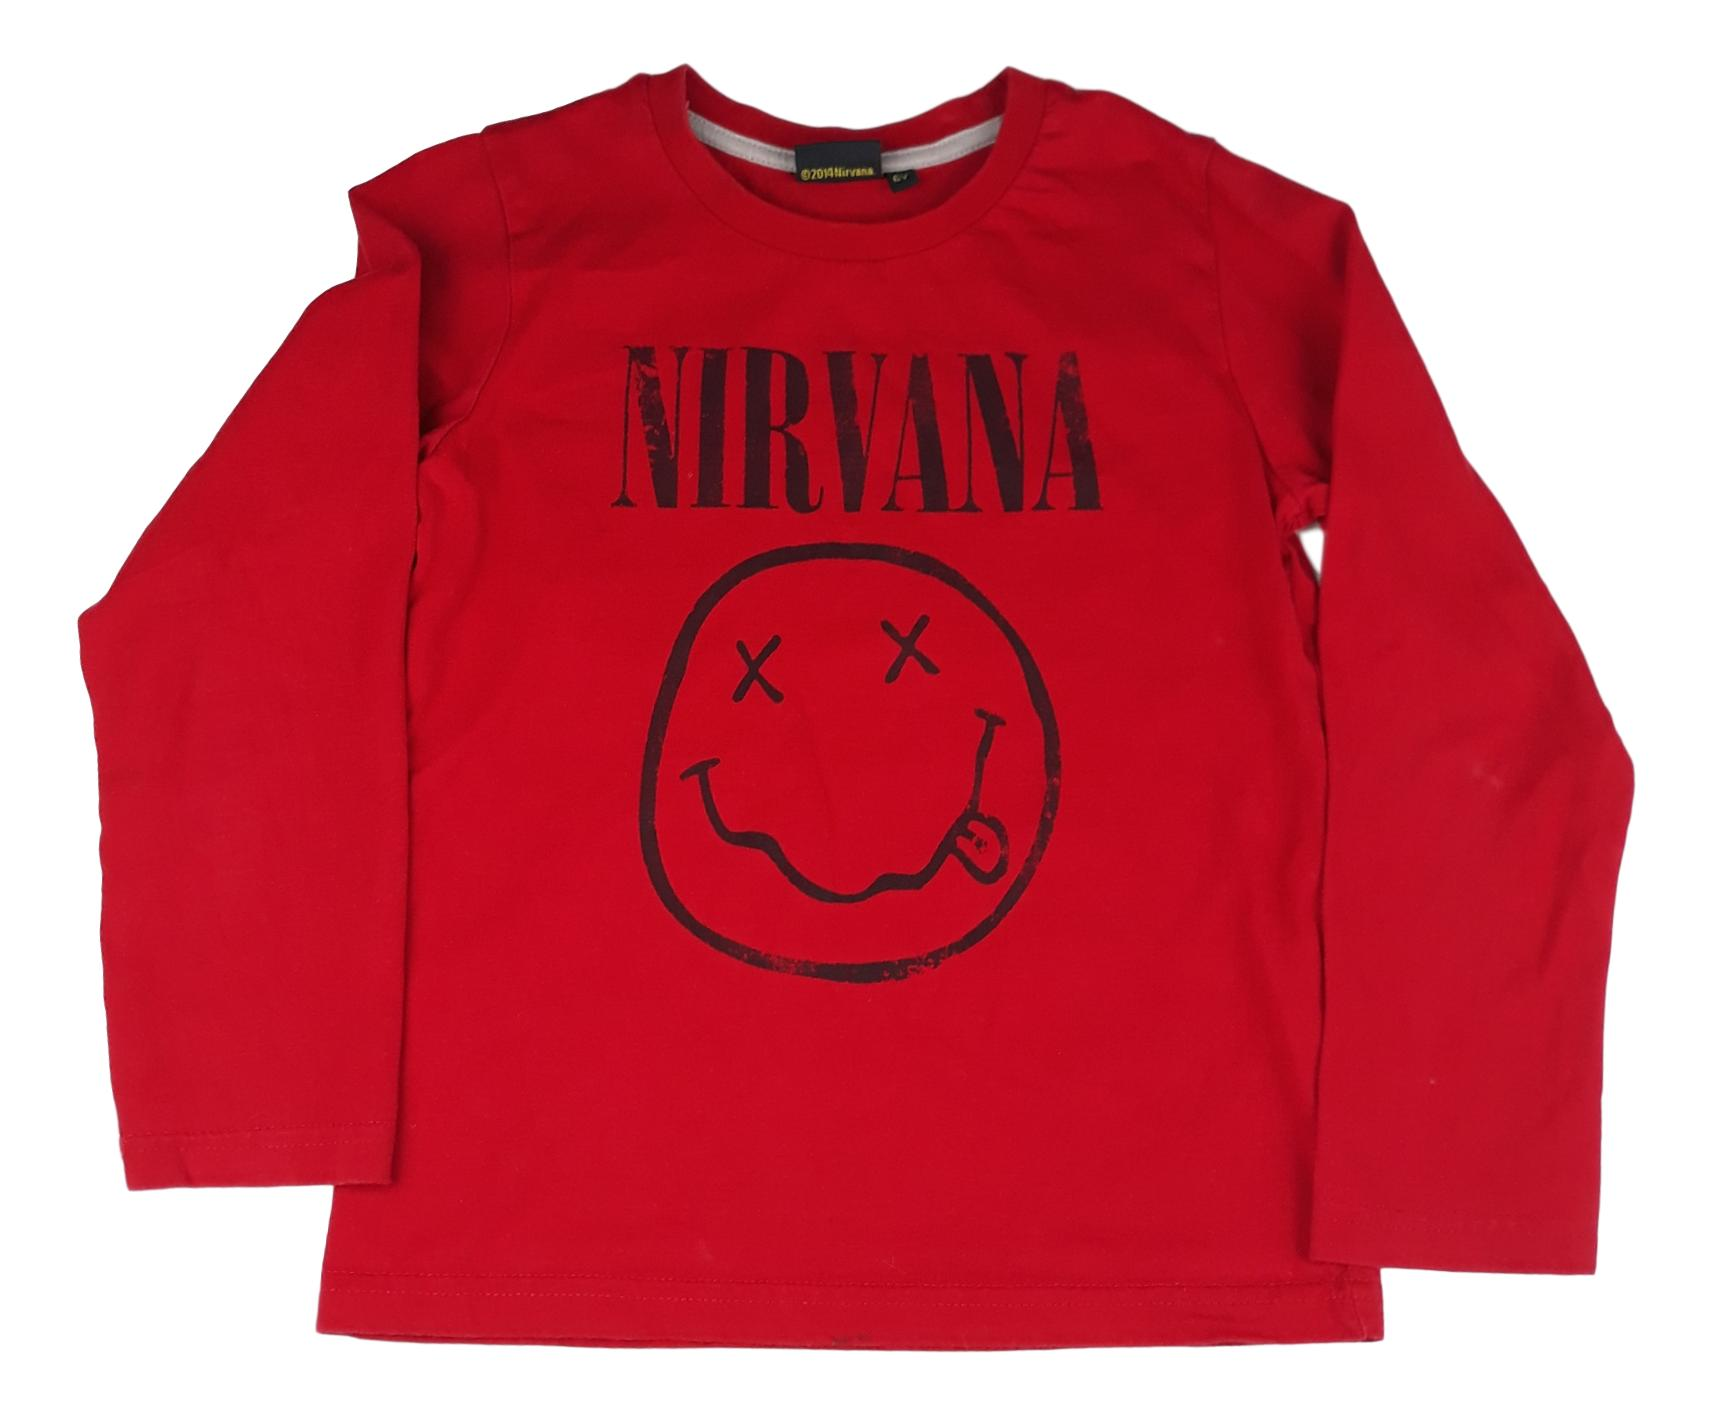 Nirvana - taille 6 ans